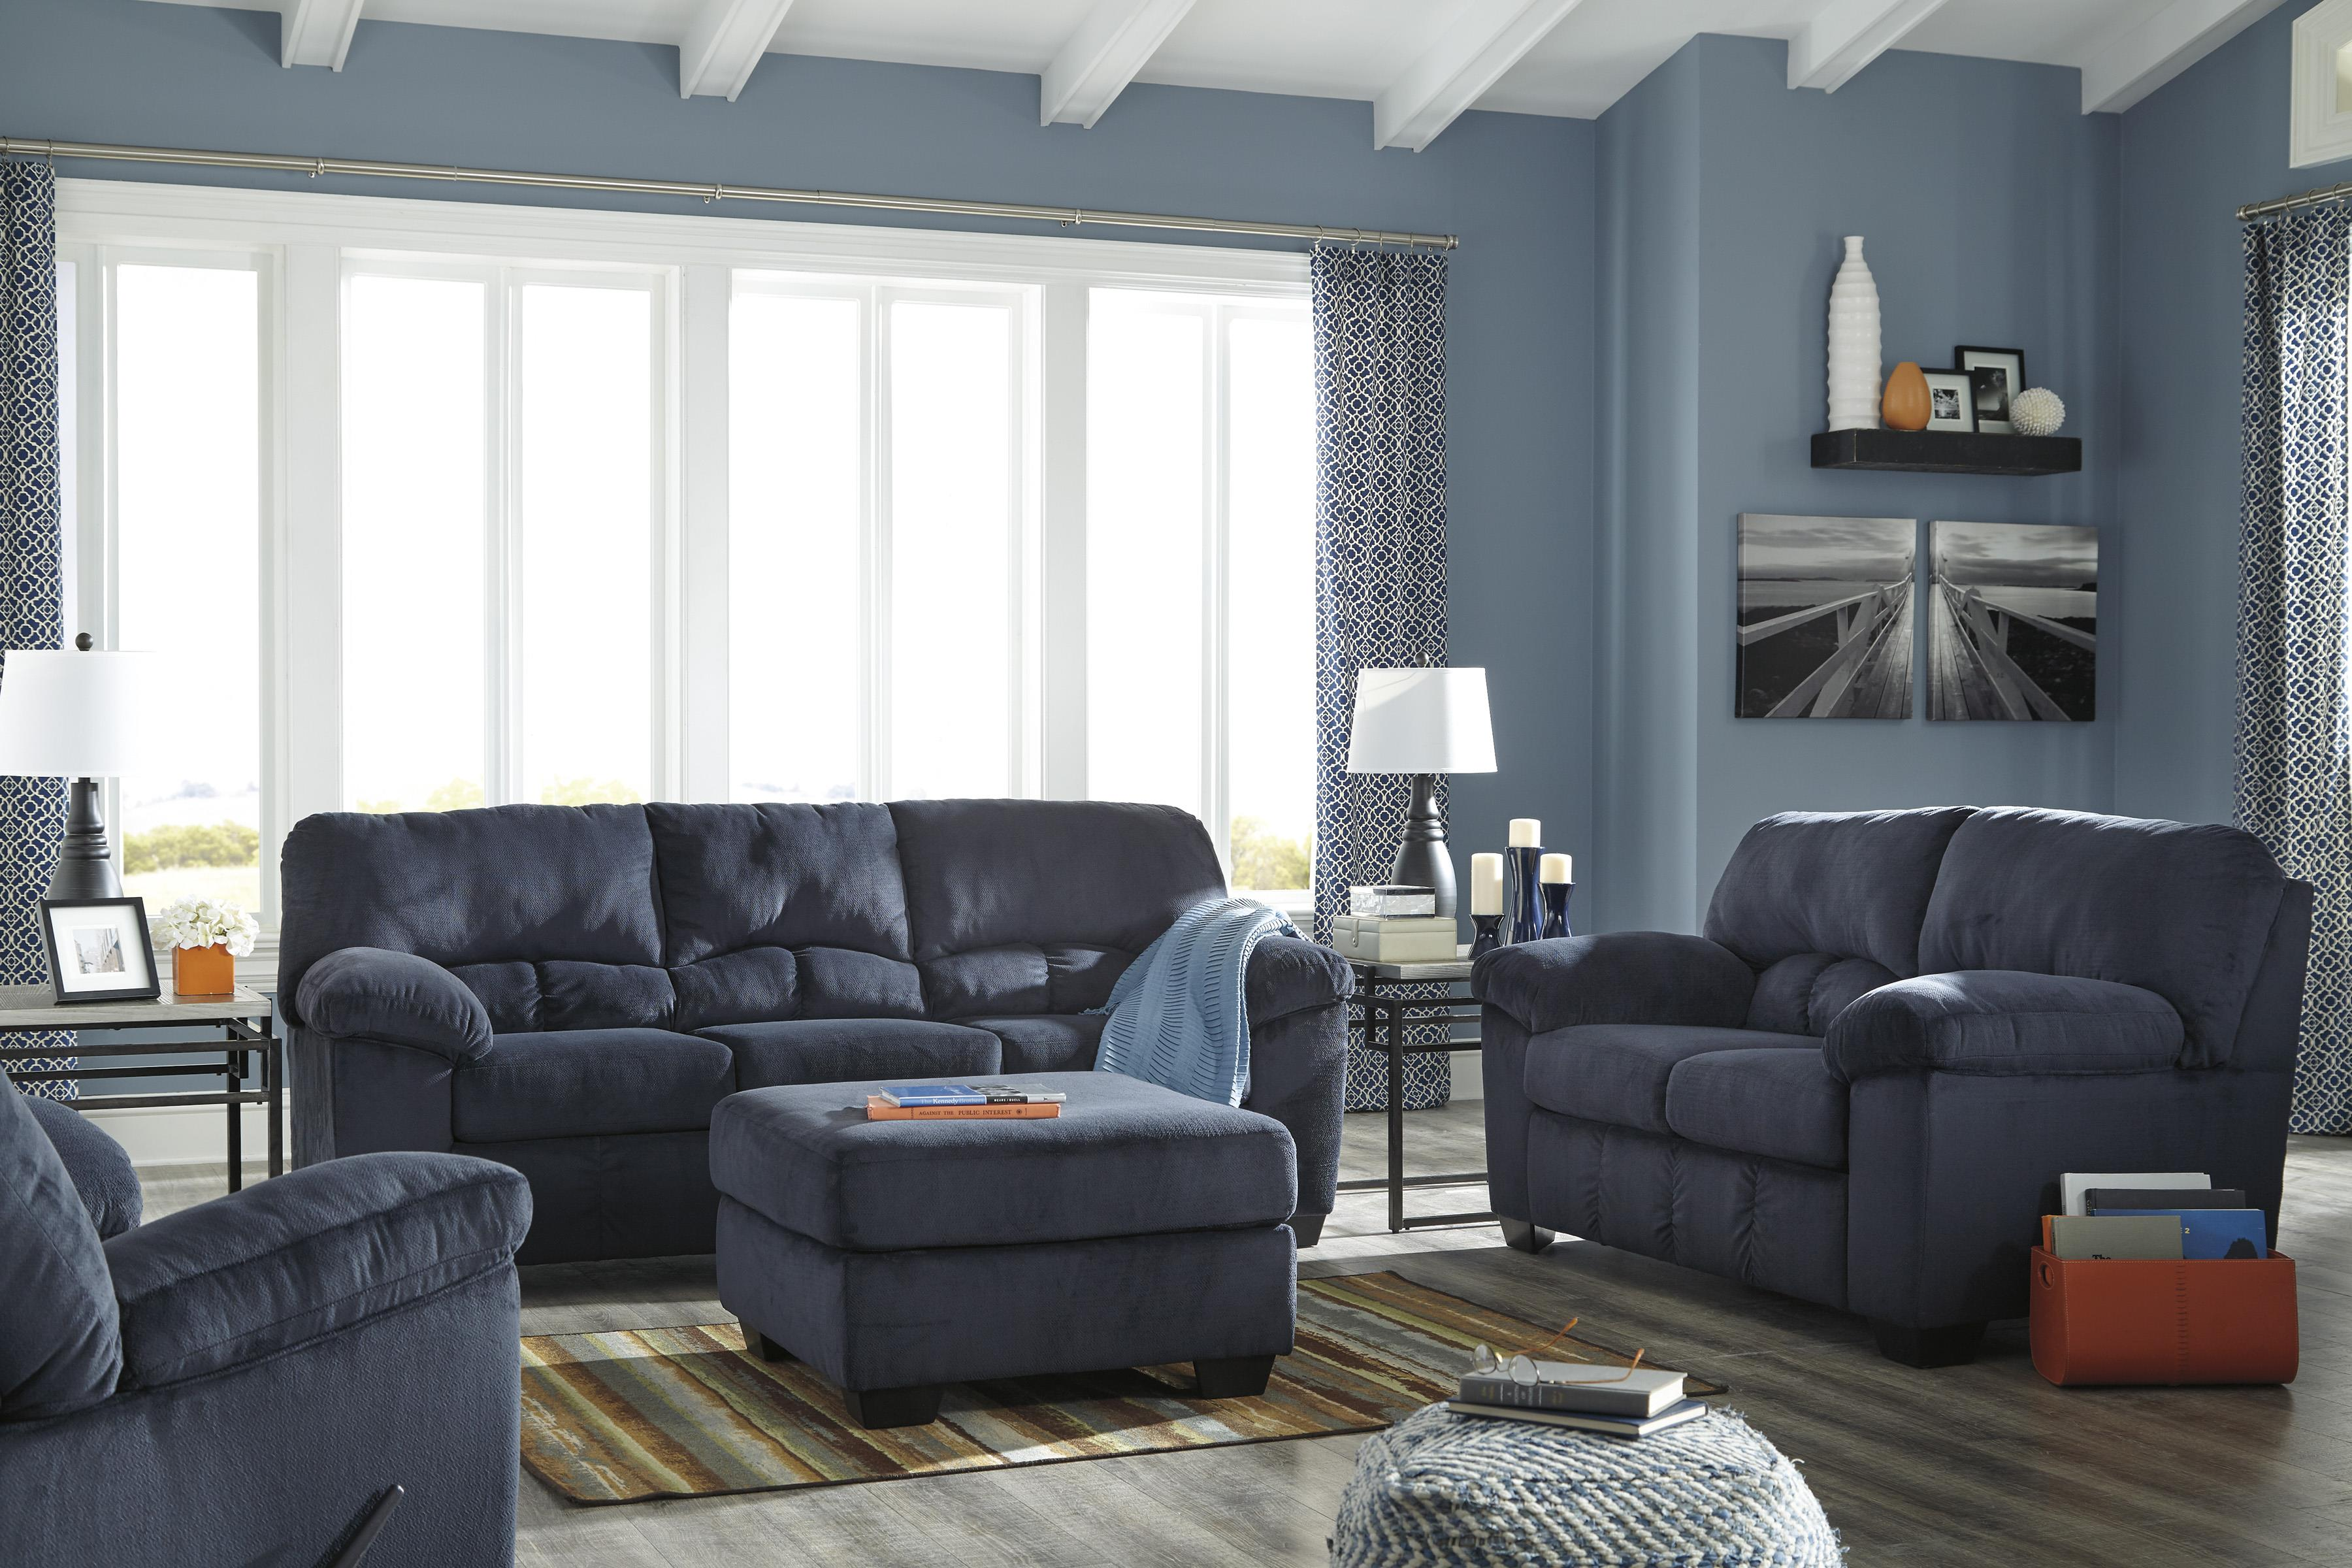 Signature Design by Ashley Dailey Stationary Living Room Group - Item Number: 95402 Living Room Group 3